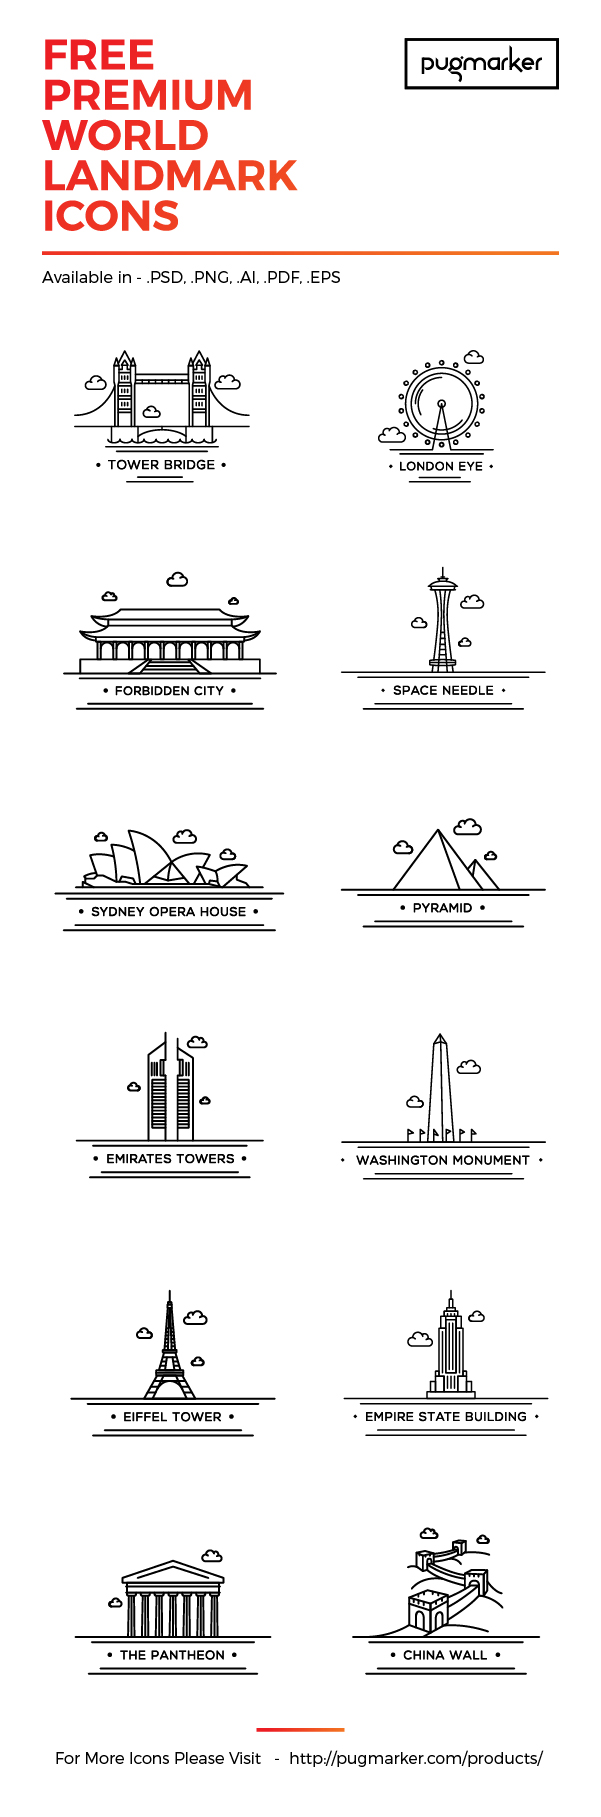 World Landmark: 12 Free Icons